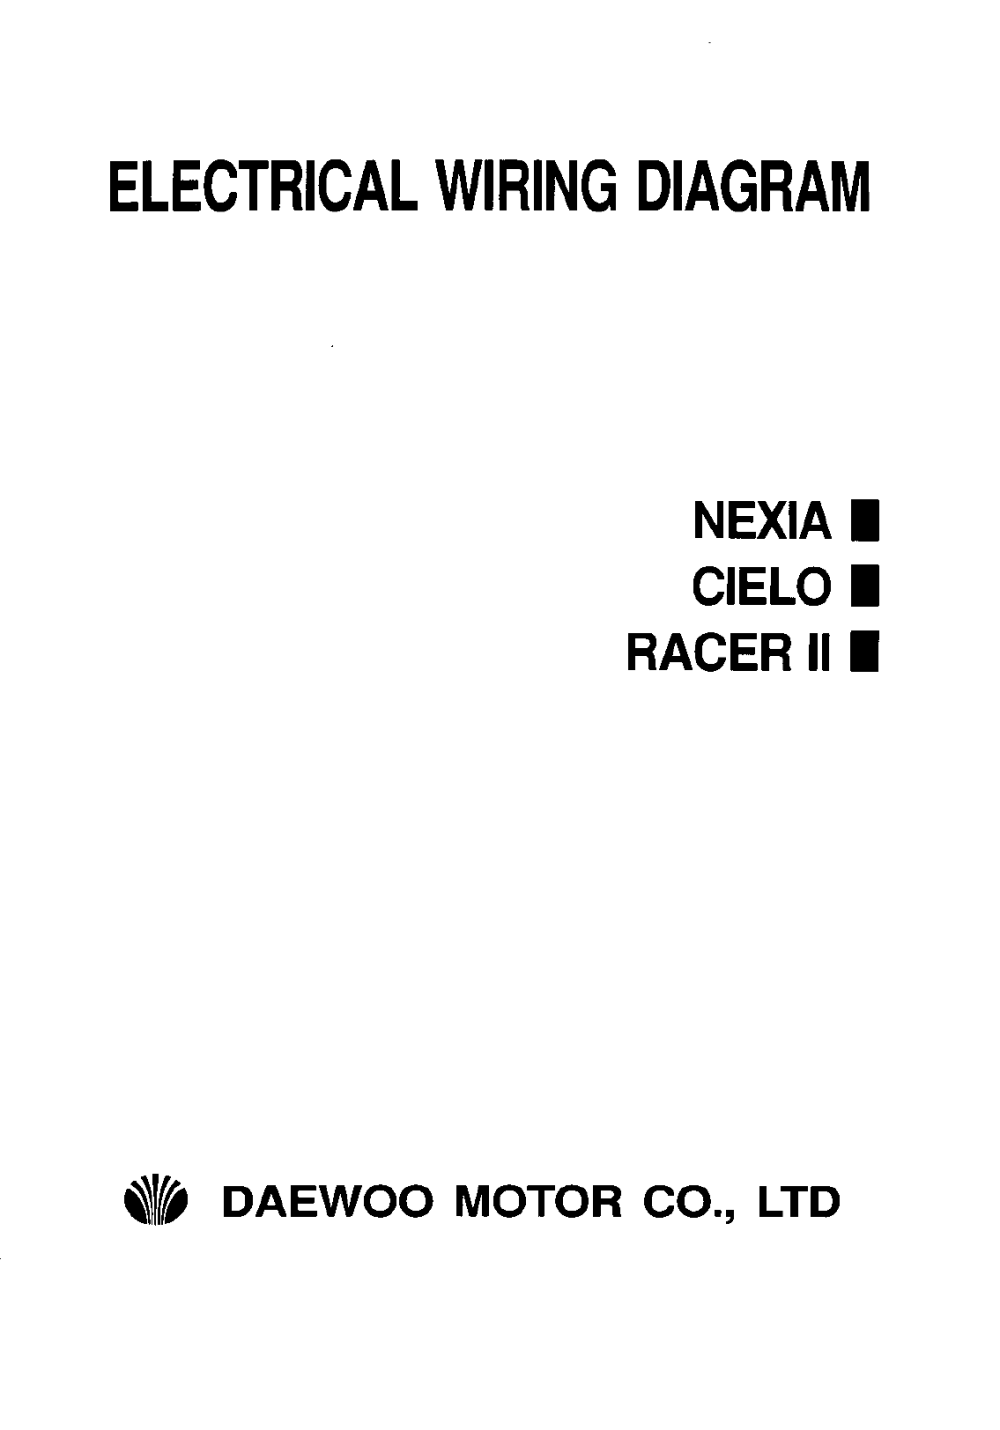 medium resolution of see our other daewoo nexia manuals